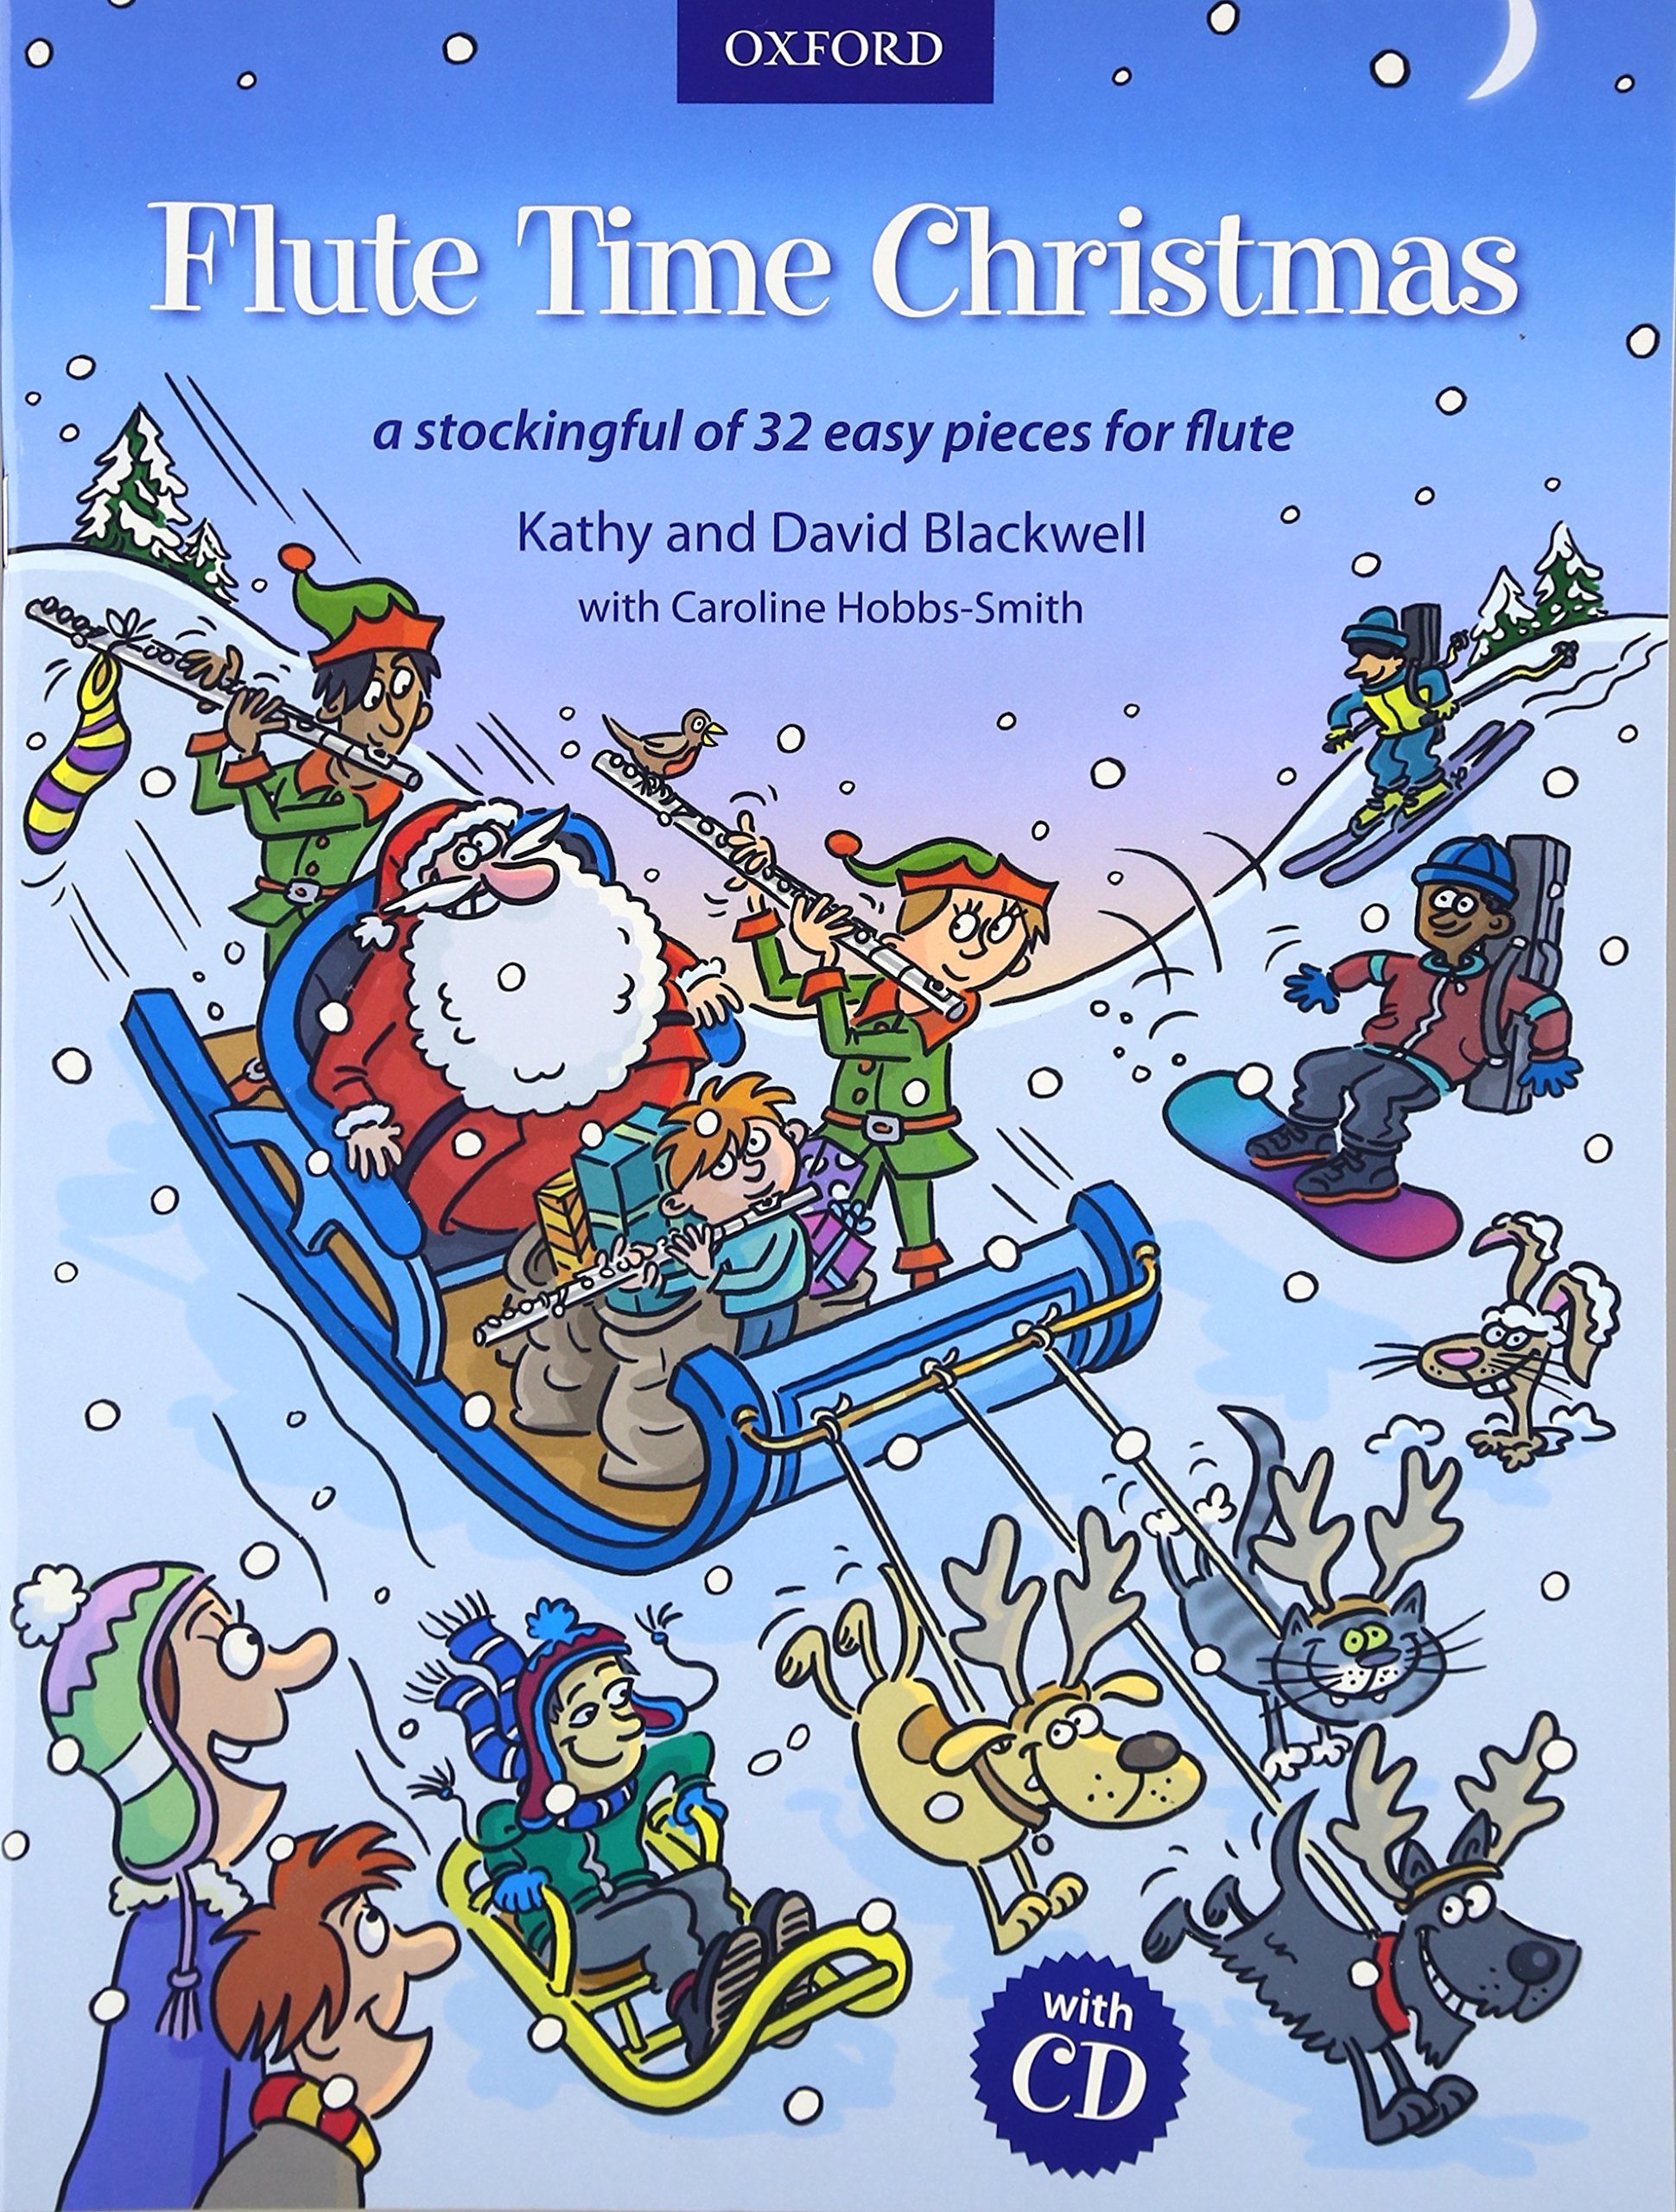 Flute Time Christmas CD A stockingful of 32 easy pieces Amazon